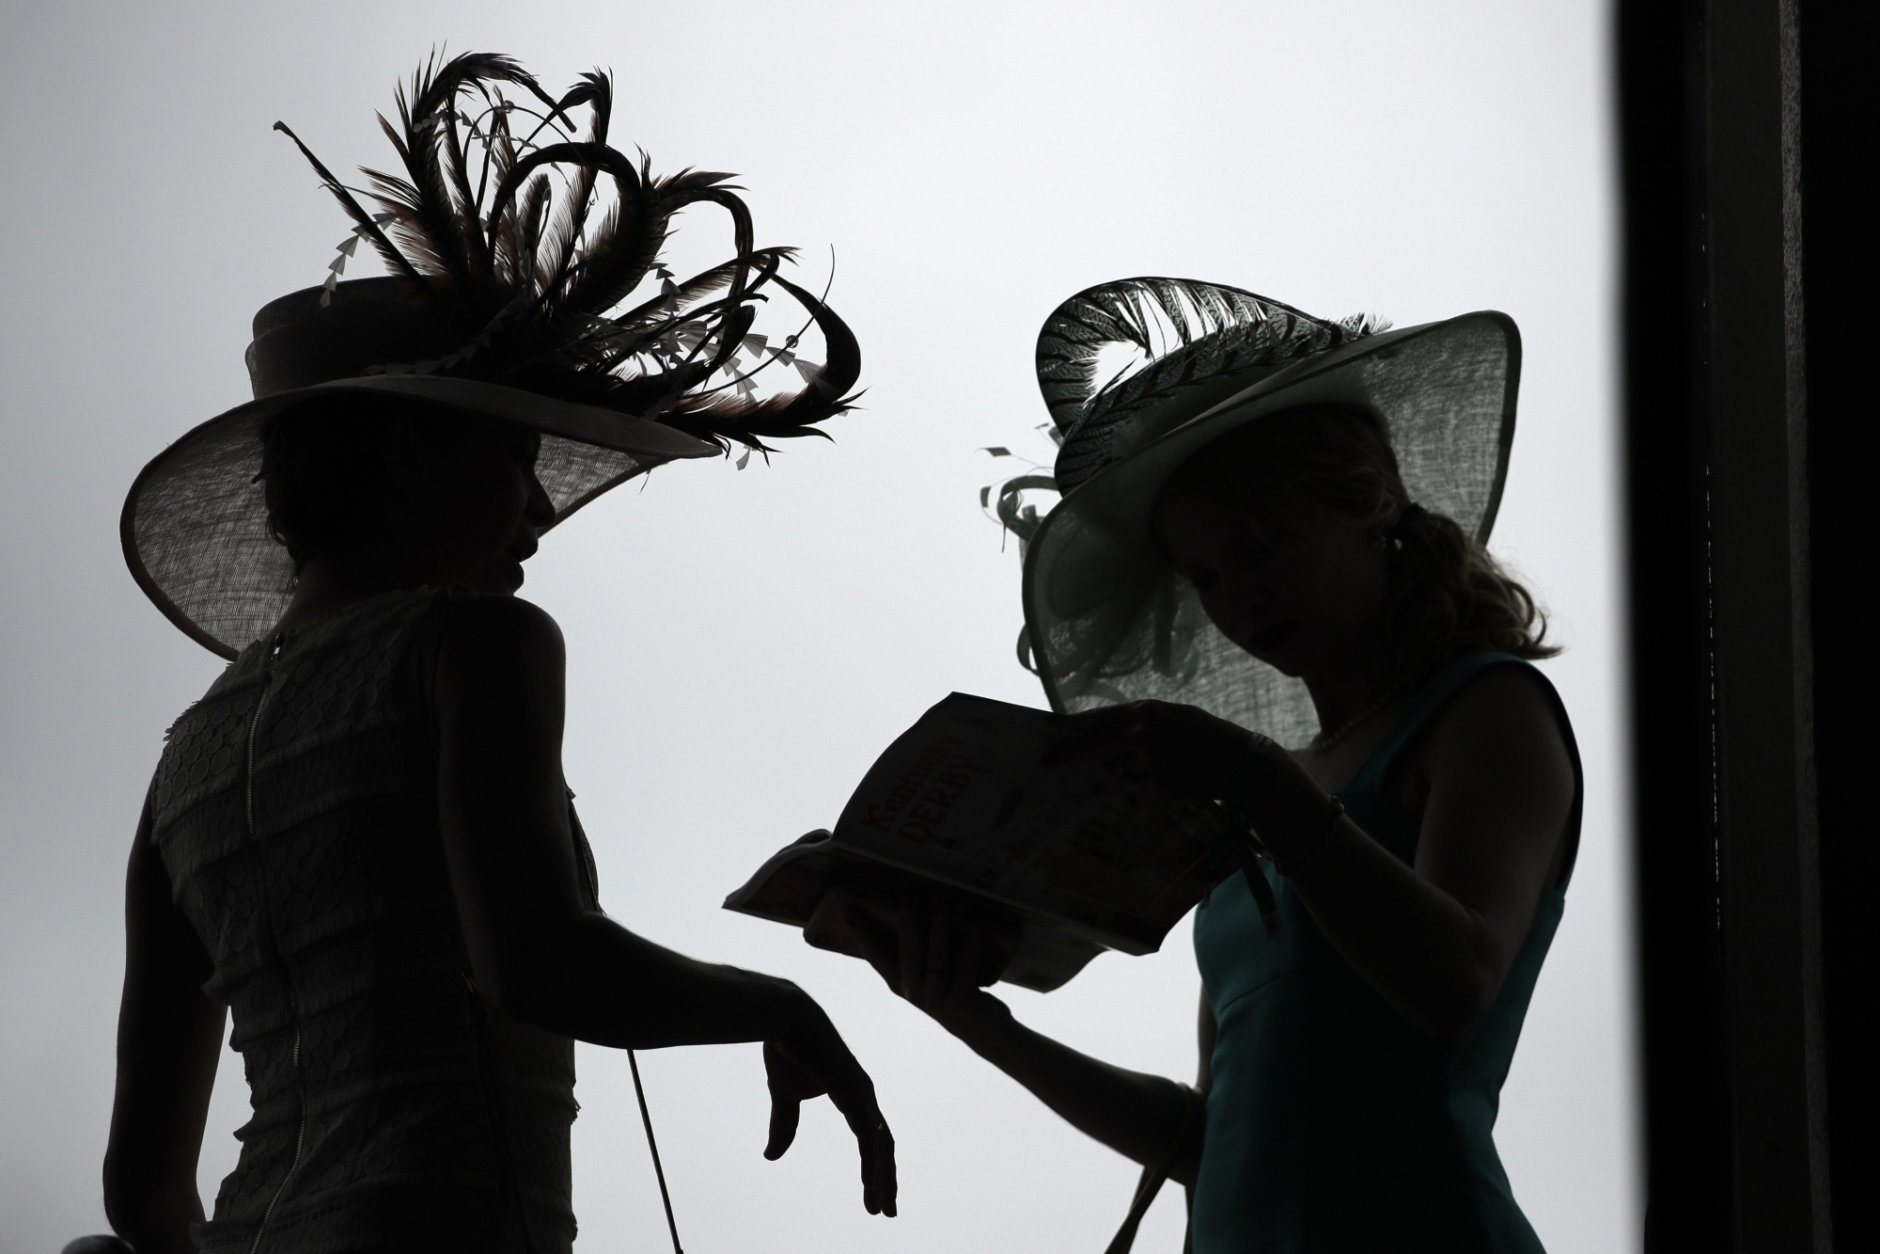 Women wear a hat before the 145th running of the Kentucky Derby horse race at Churchill Downs Saturday, May 4, 2019, in Louisville, Ky. (AP Photo/Charlie Riedel)